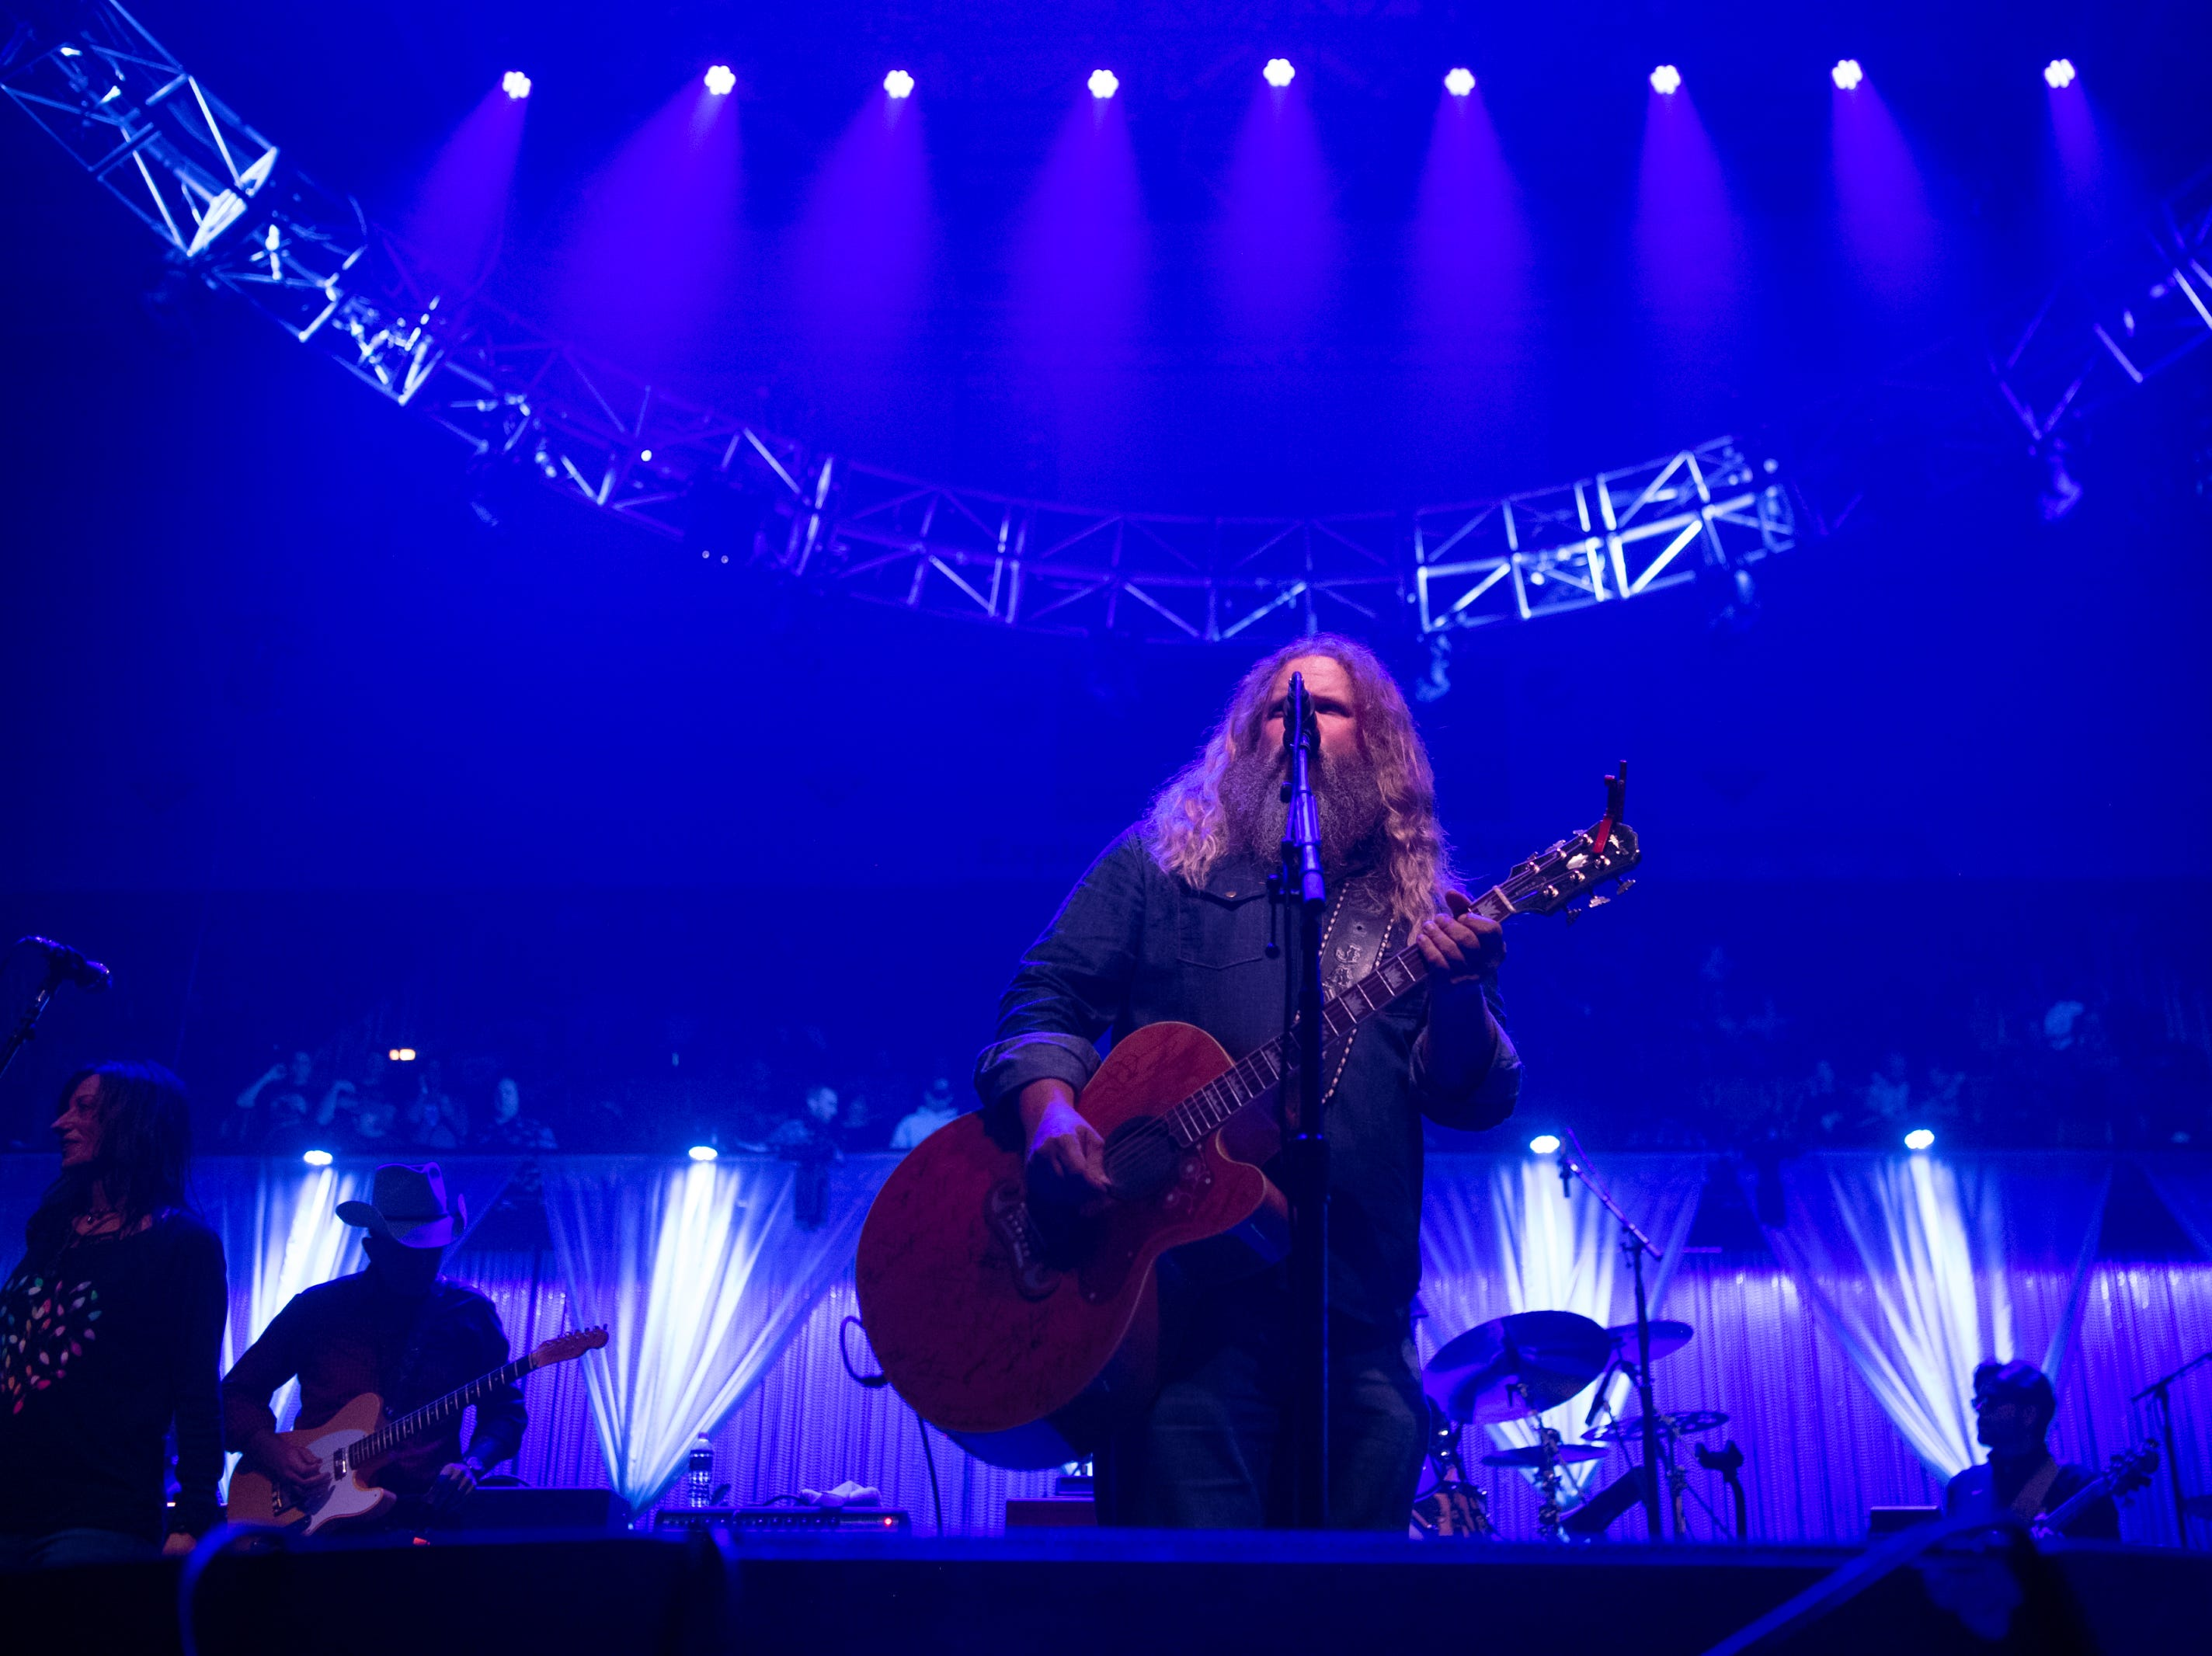 Jamey Johnson performs on the first night of the 30th annual Christmas Jam at the U.S Cellular Center in Asheville, Dec. 7, 2018.